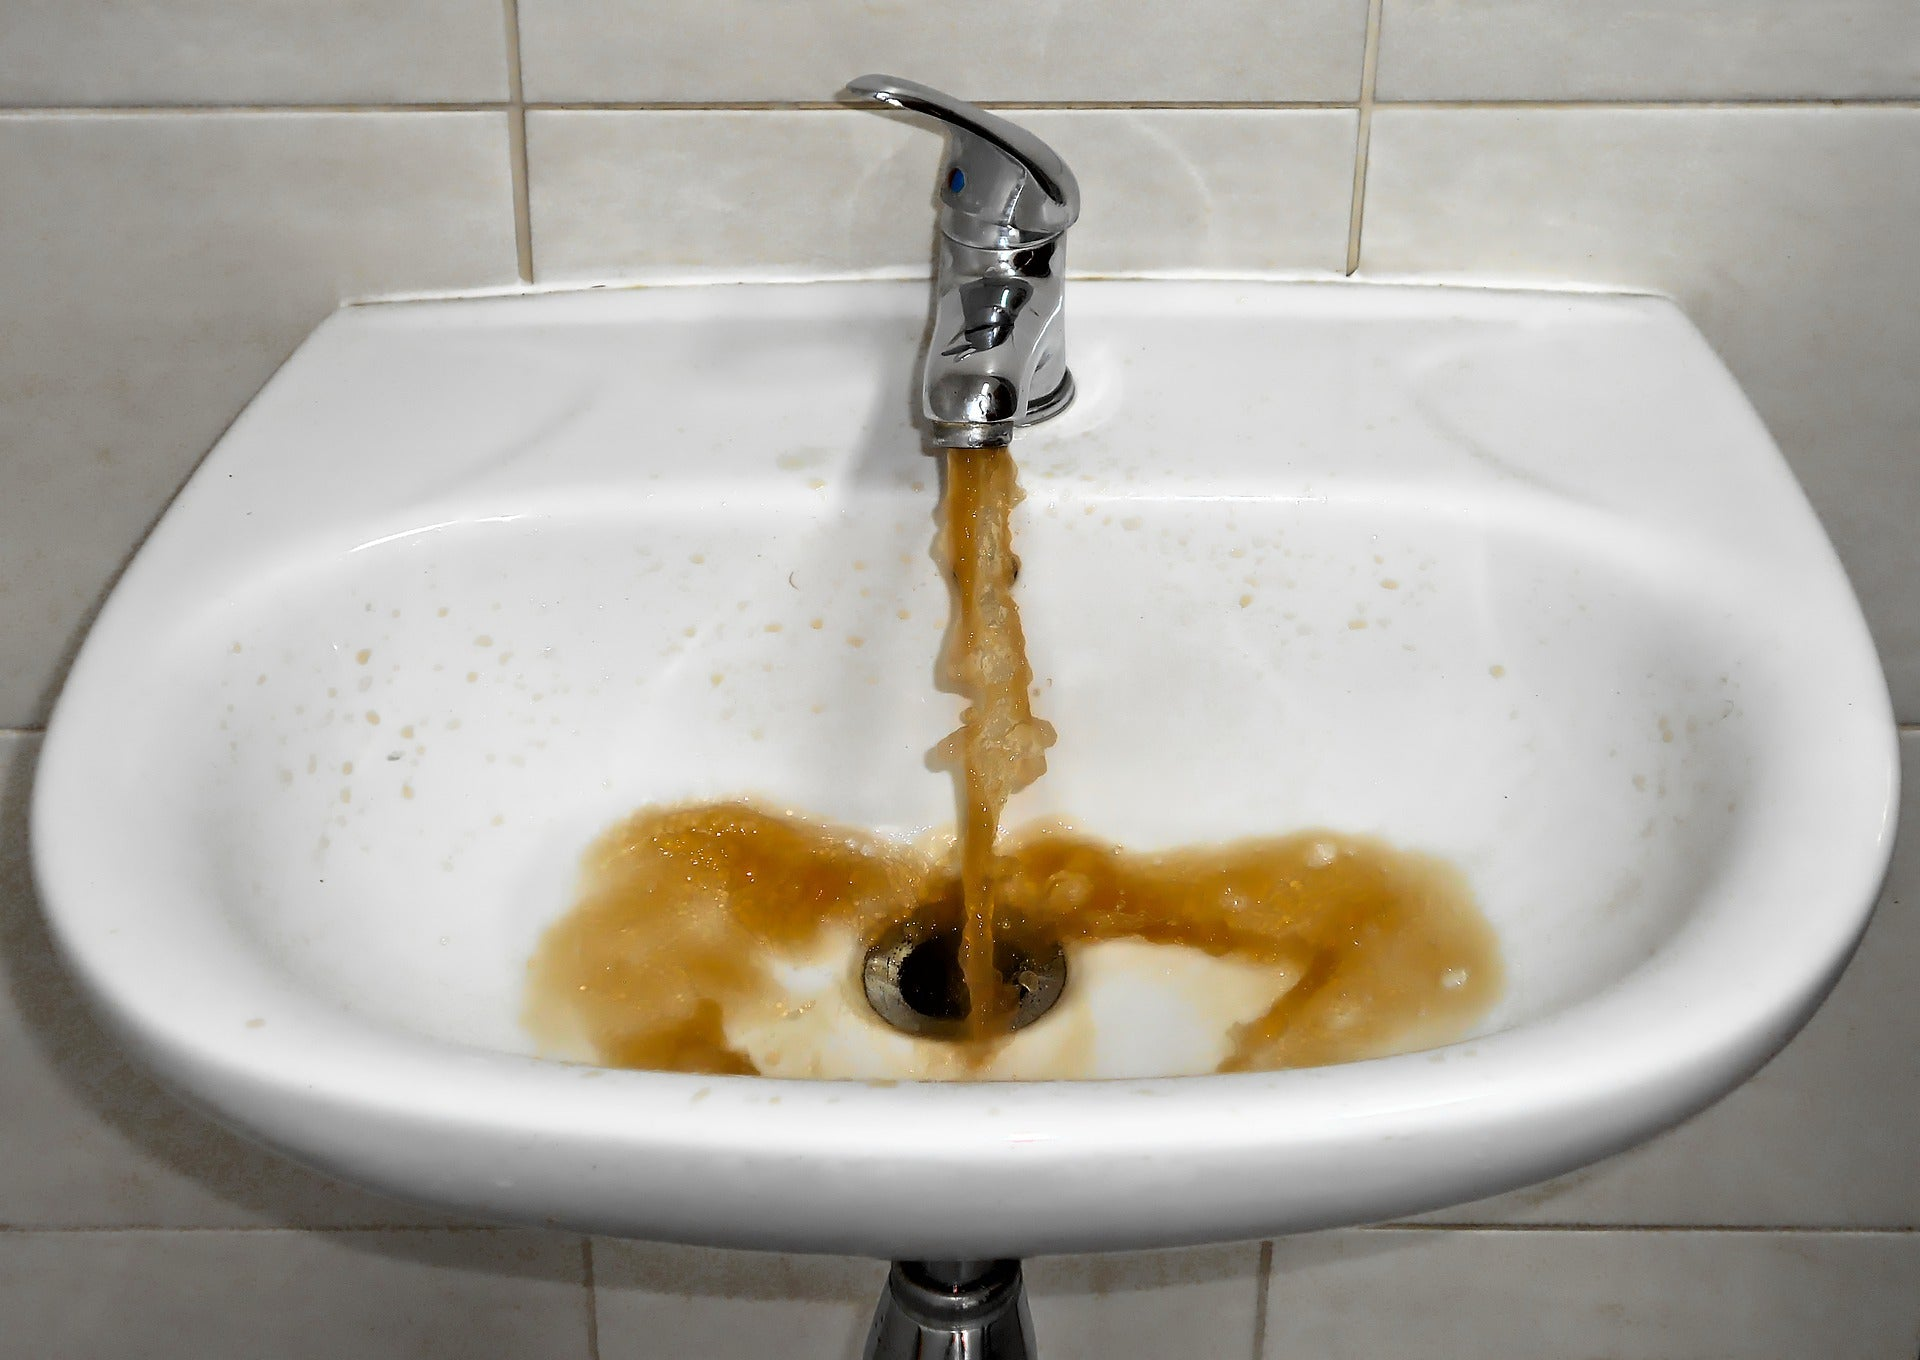 Brown tap water